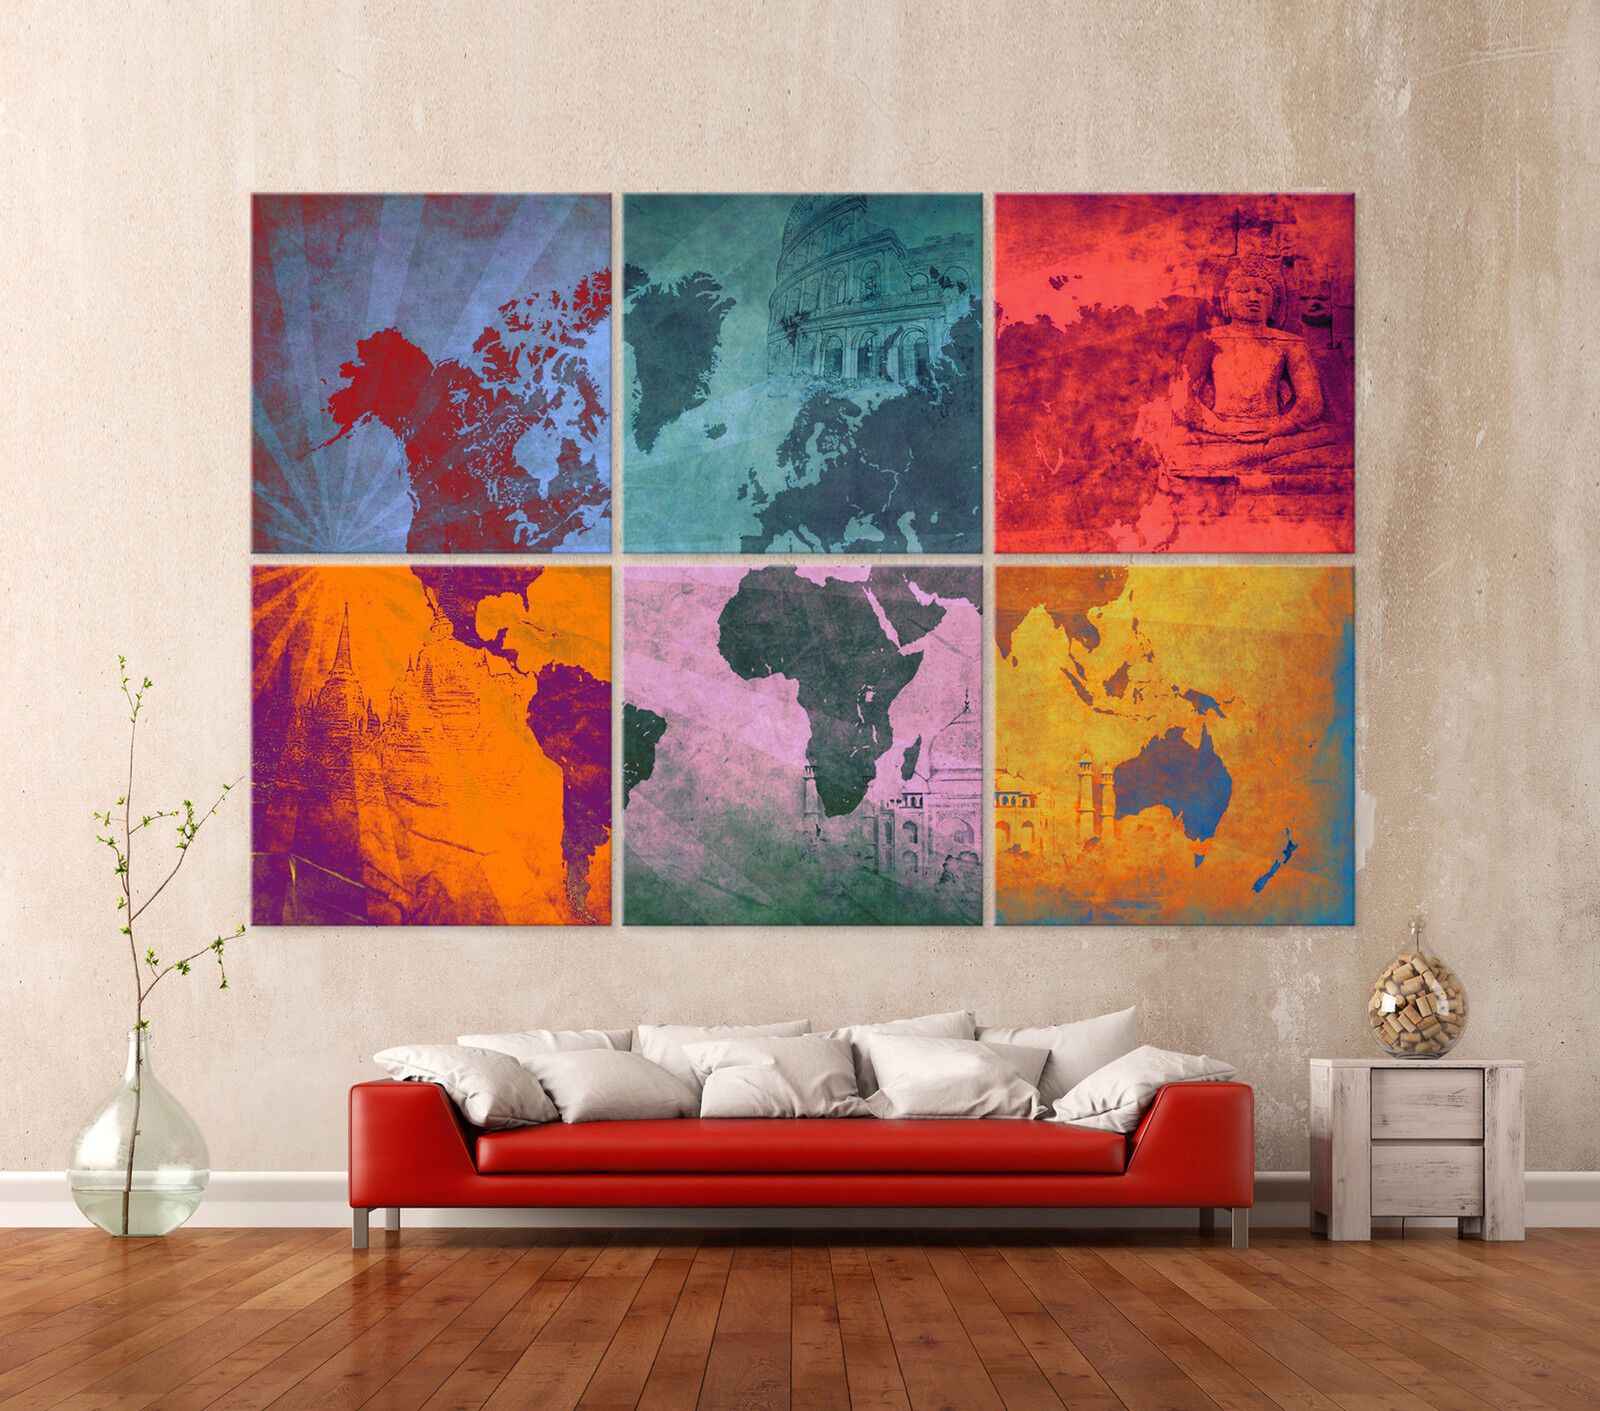 die weltkarte pop art leinwand bilder modern kunstdruck bild wandbild worldmap eur 289 00. Black Bedroom Furniture Sets. Home Design Ideas